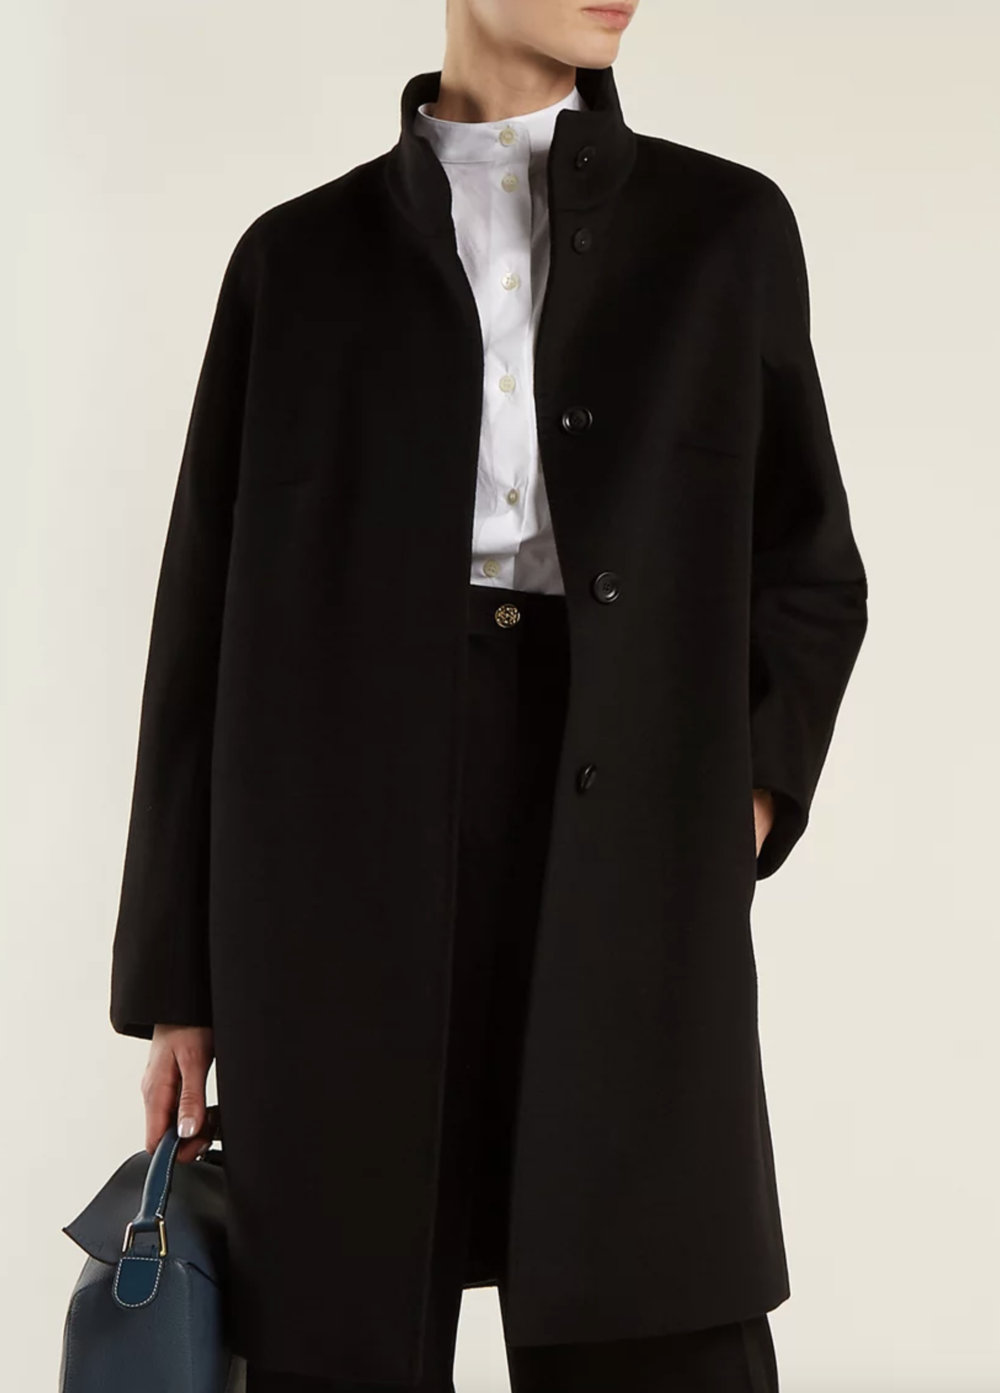 Lizzie Edwards Personal Stylist London Max_Mara_Melina_Coat.png